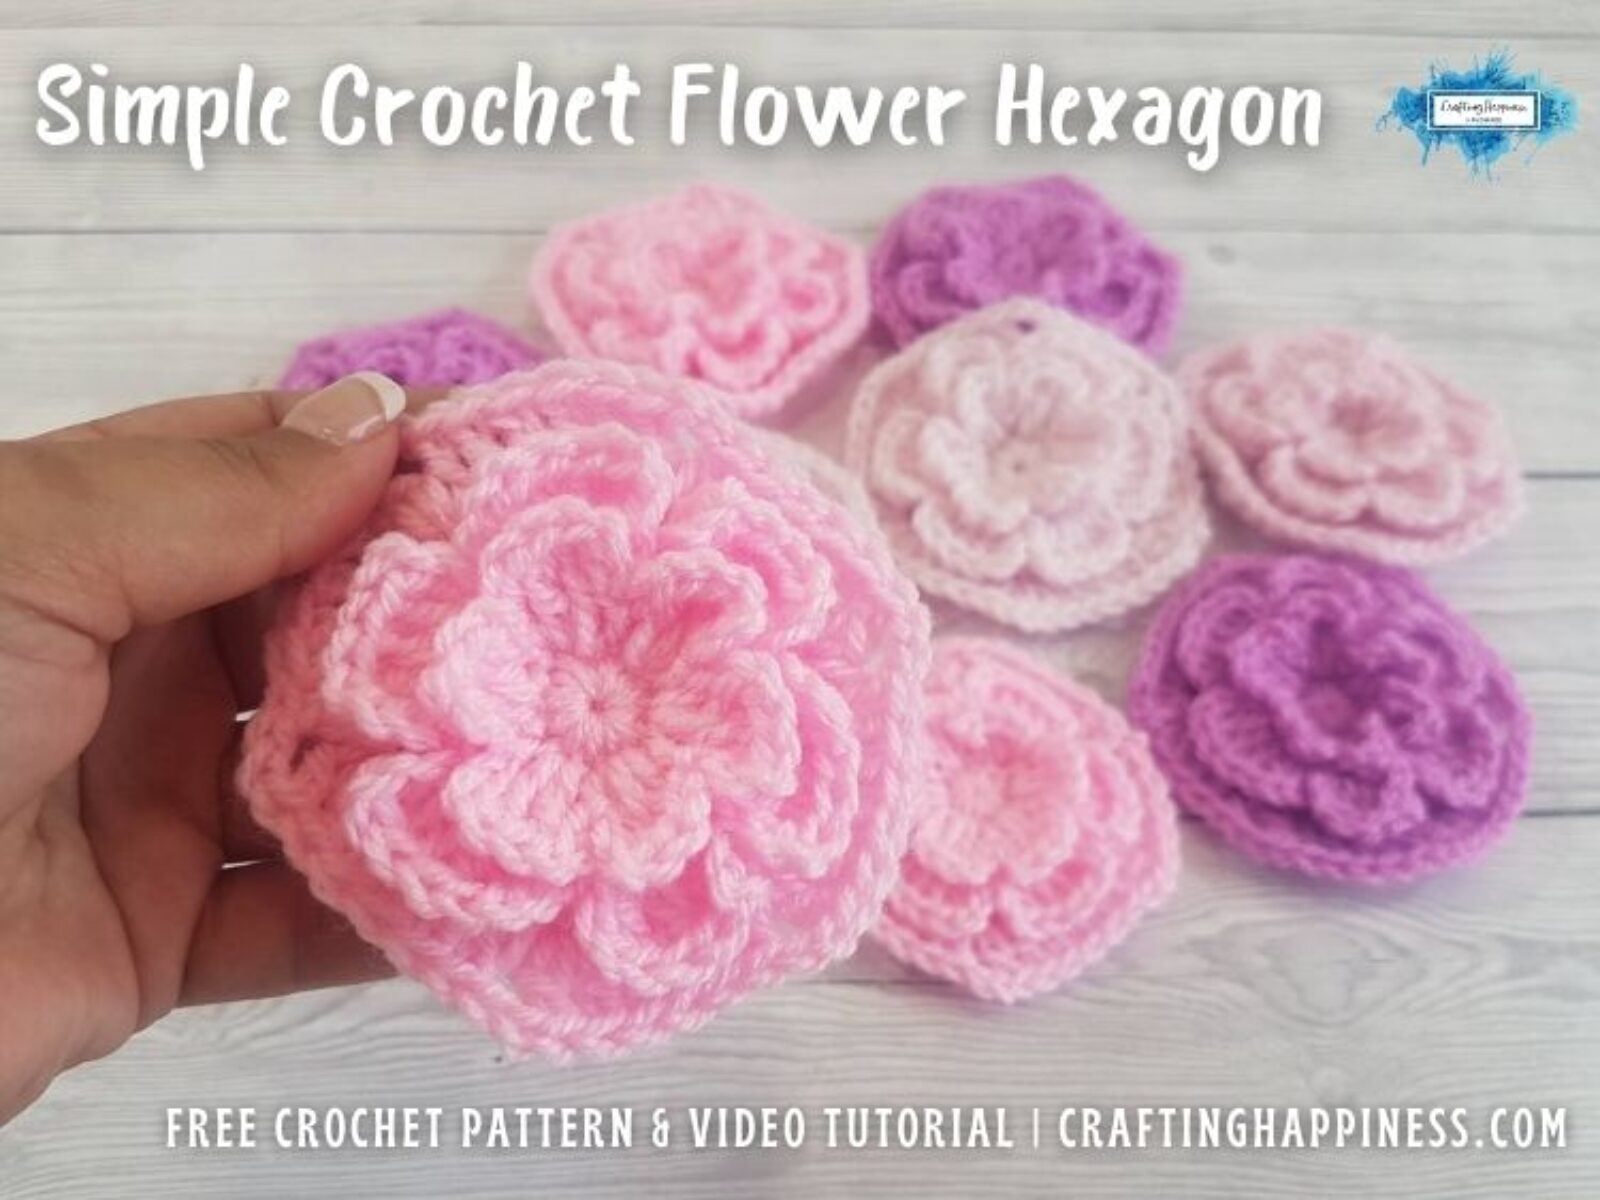 FB BLOG POSTER - Simple Crochet Flower Hexagon Crafting Happiness